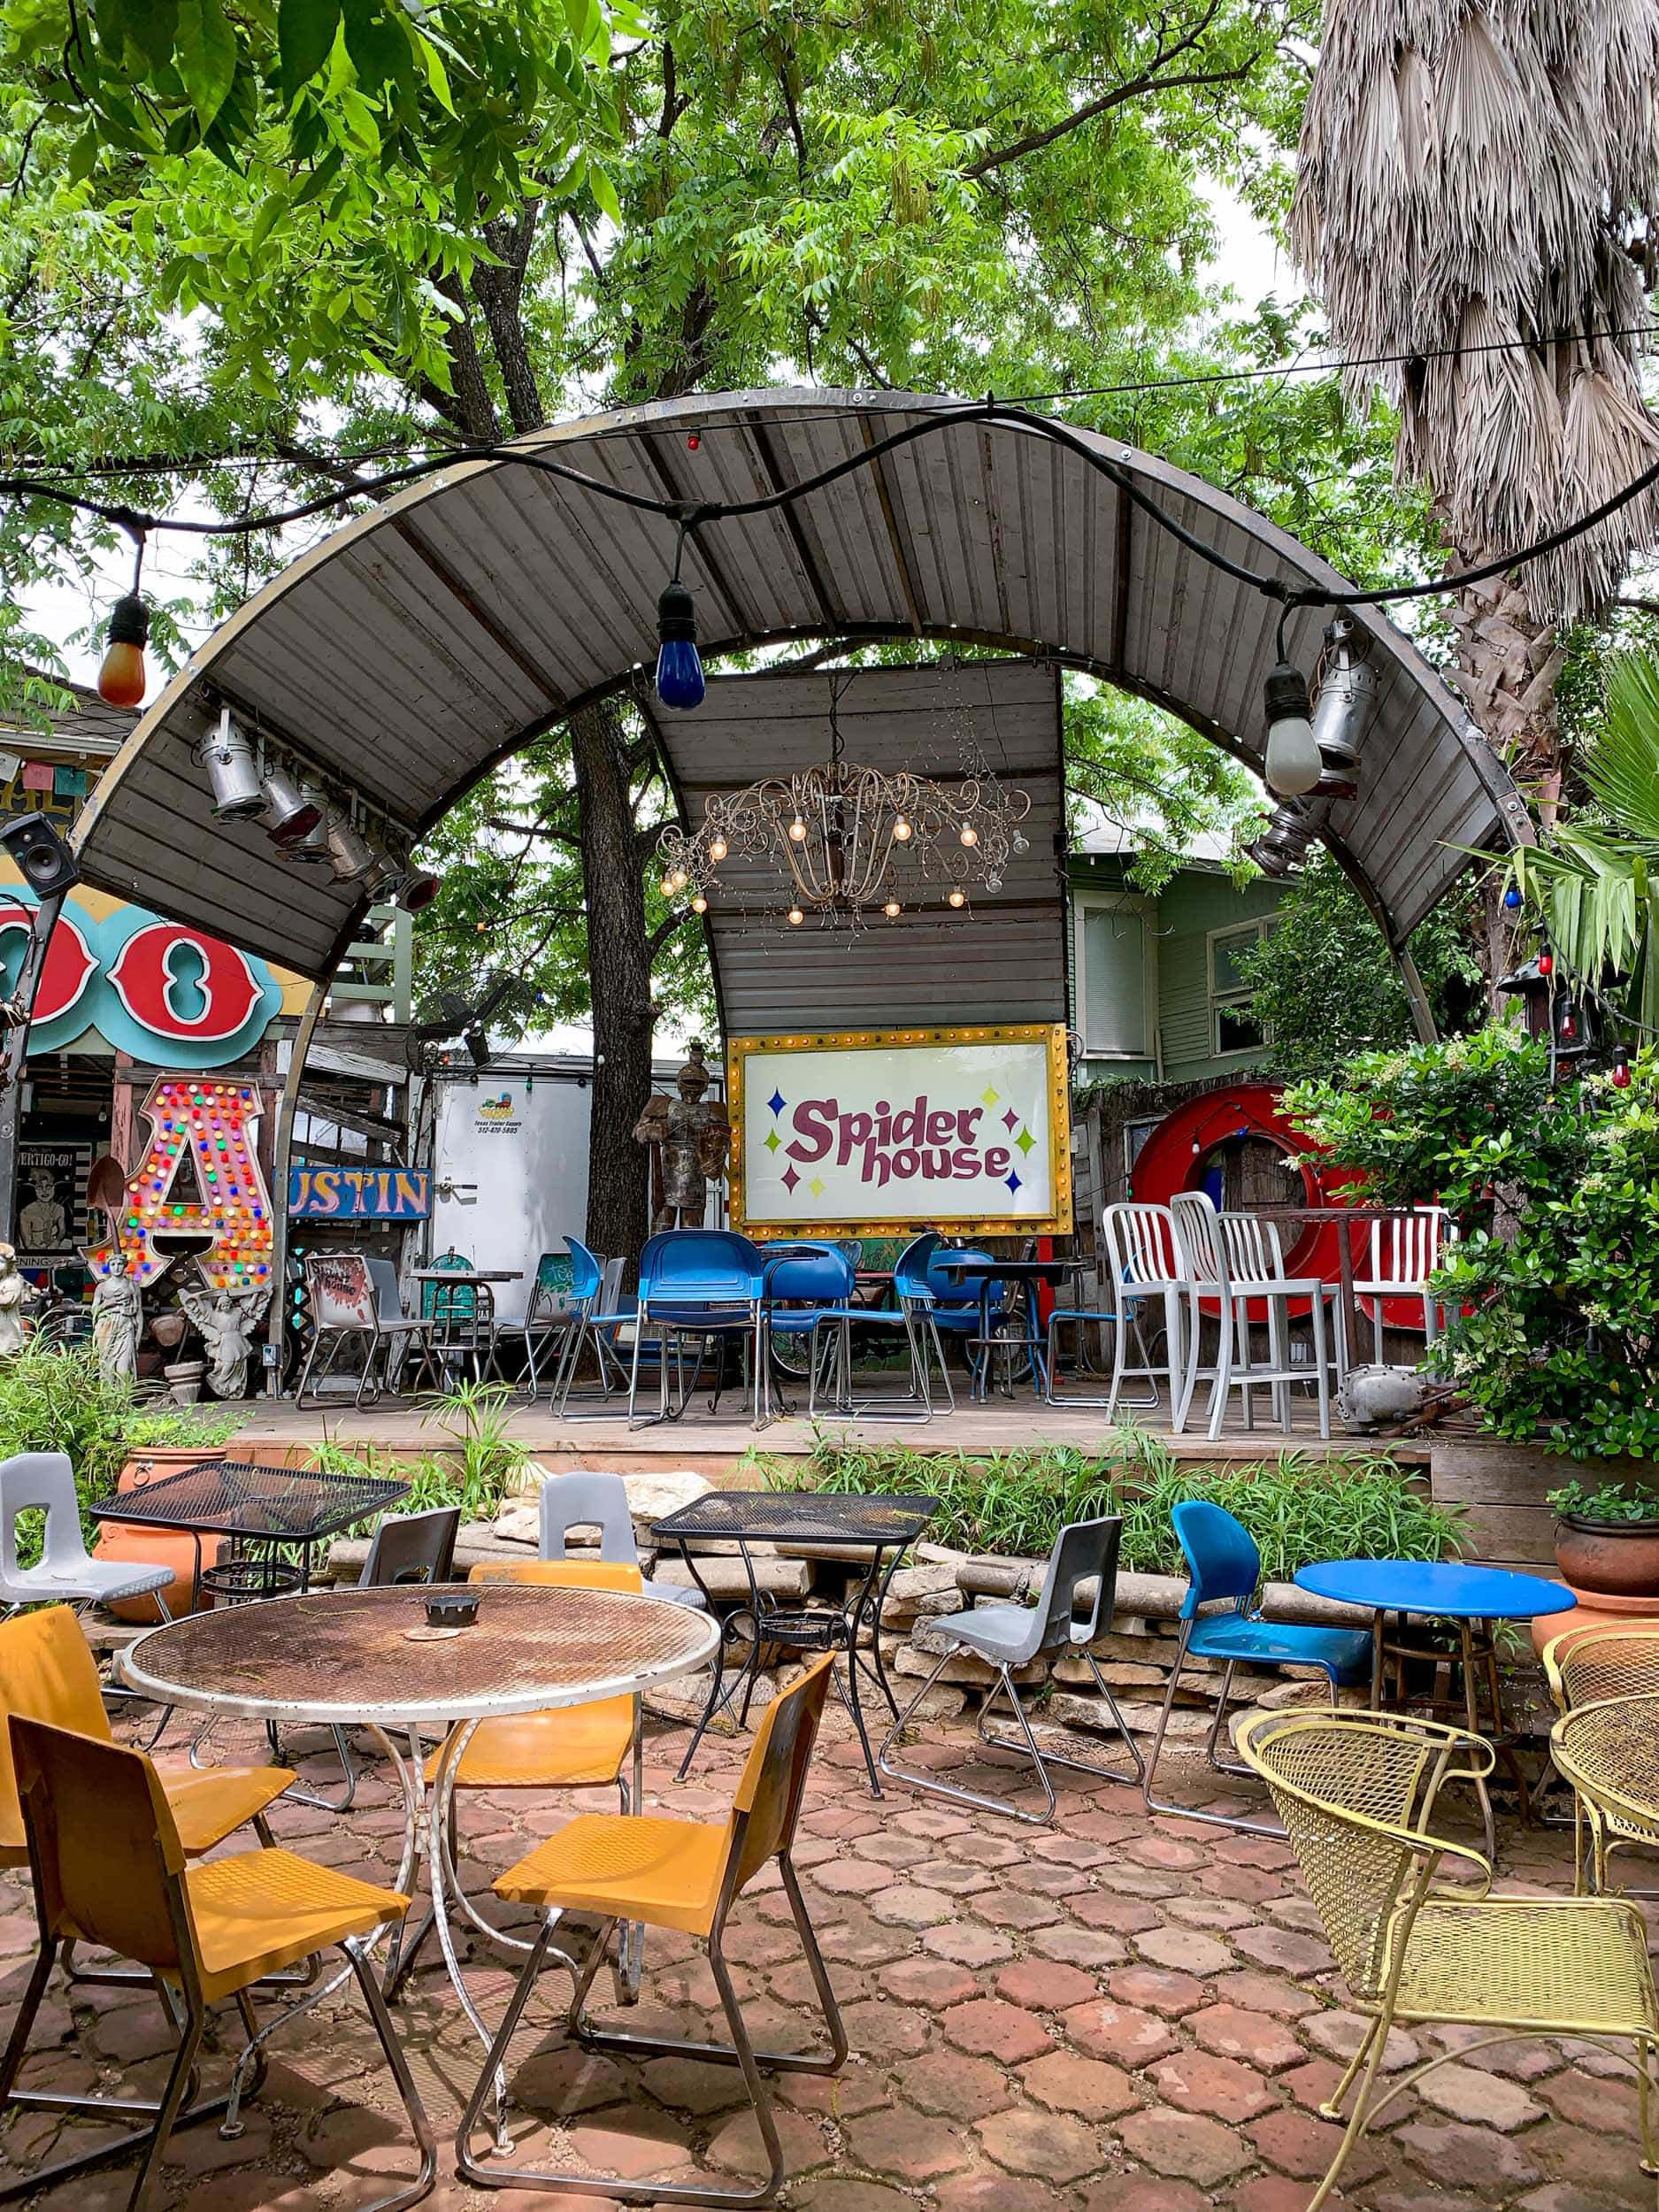 Spider House is one of the oldest and best coffee shops in Austin, TX